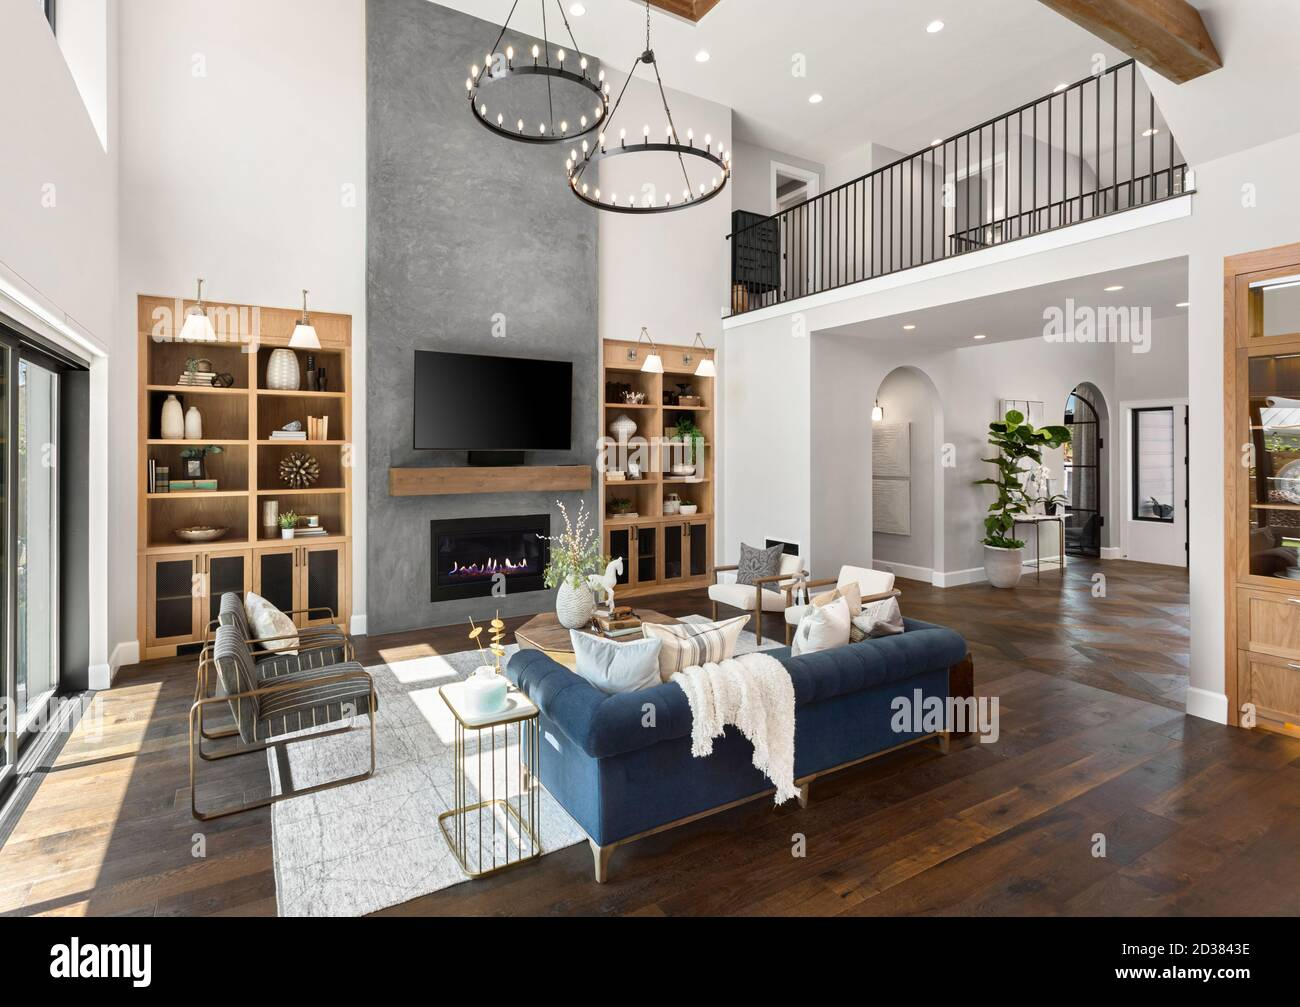 Beautiful Living Room In New Traditional Style Luxury Home Features Vaulted Ceilings Fireplace With Roaring Fire And Elegant Furnishings Stock Photo Alamy